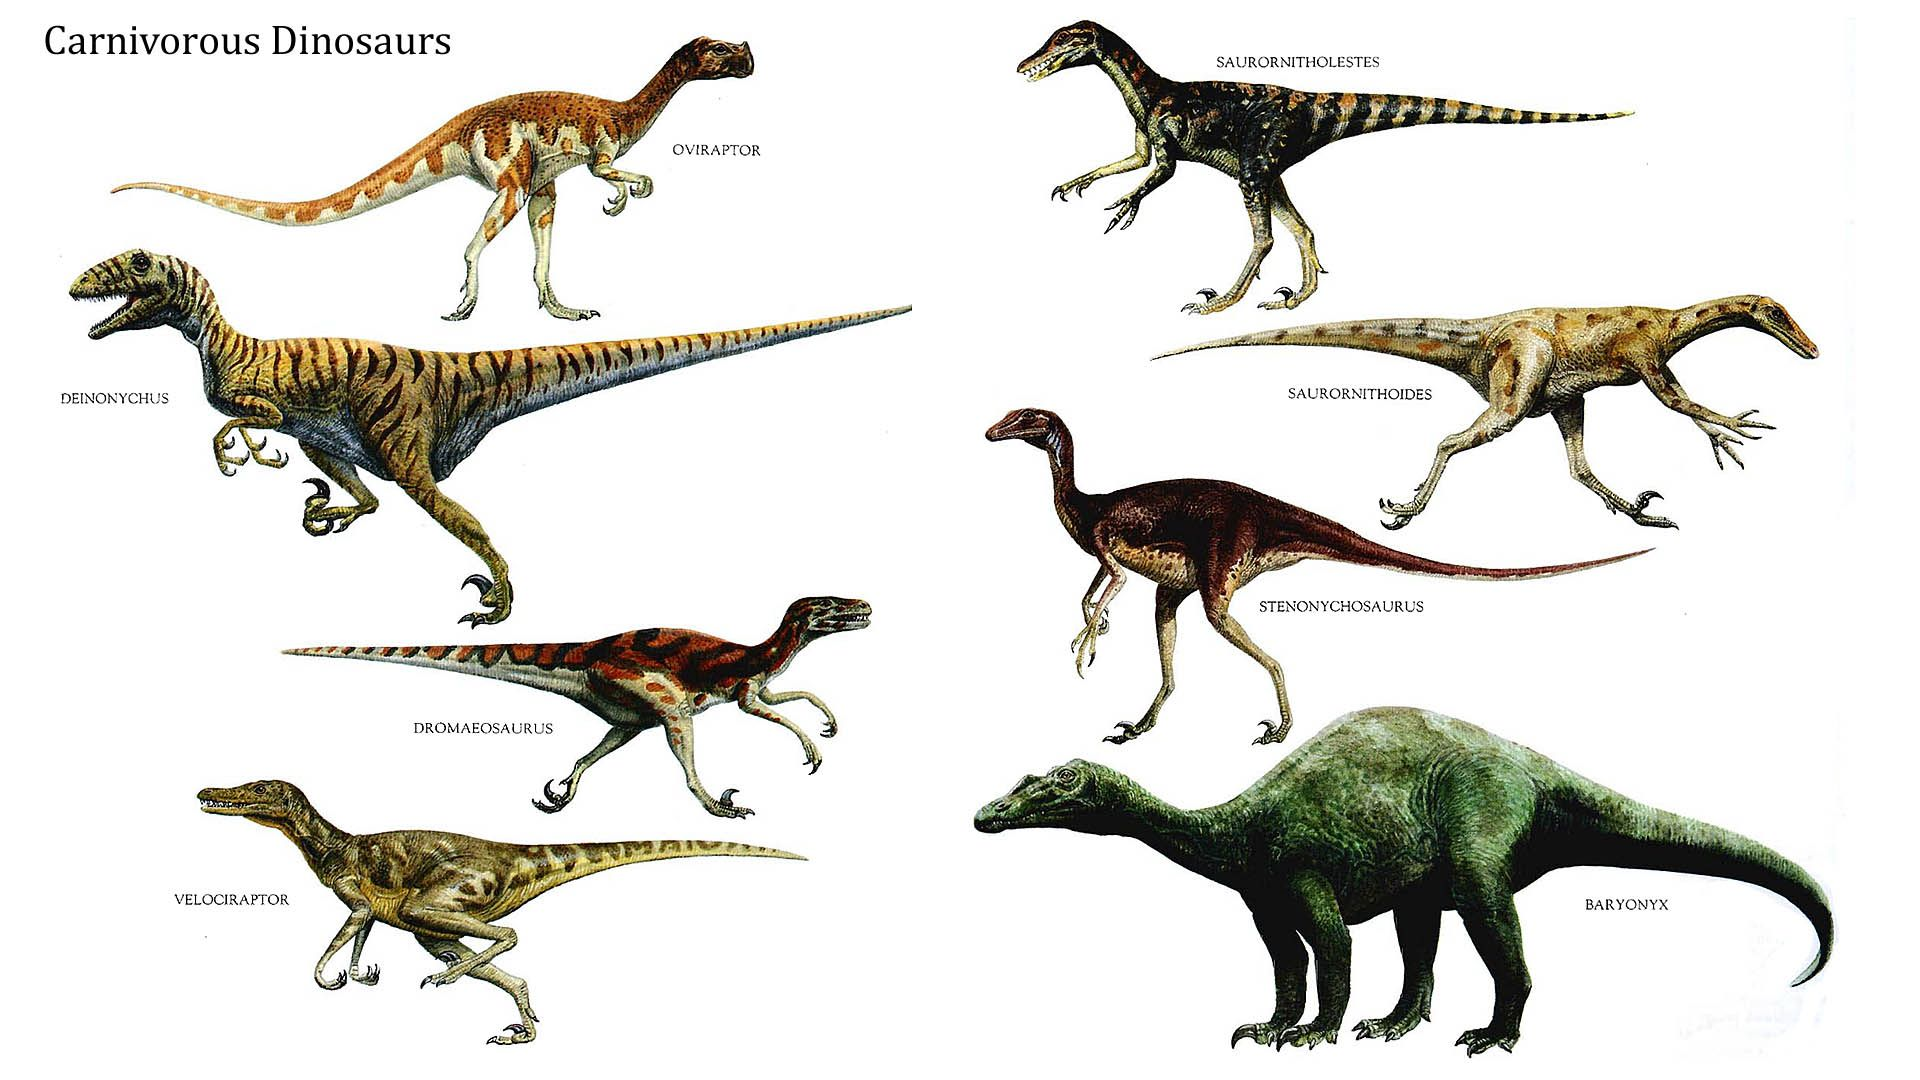 Dinosaurs Images Carnivorous Dinosaurs Hd Wallpaper And Background Photos 39775254 Prehistoric Animals Dinosaur Images Prehistoric Creatures